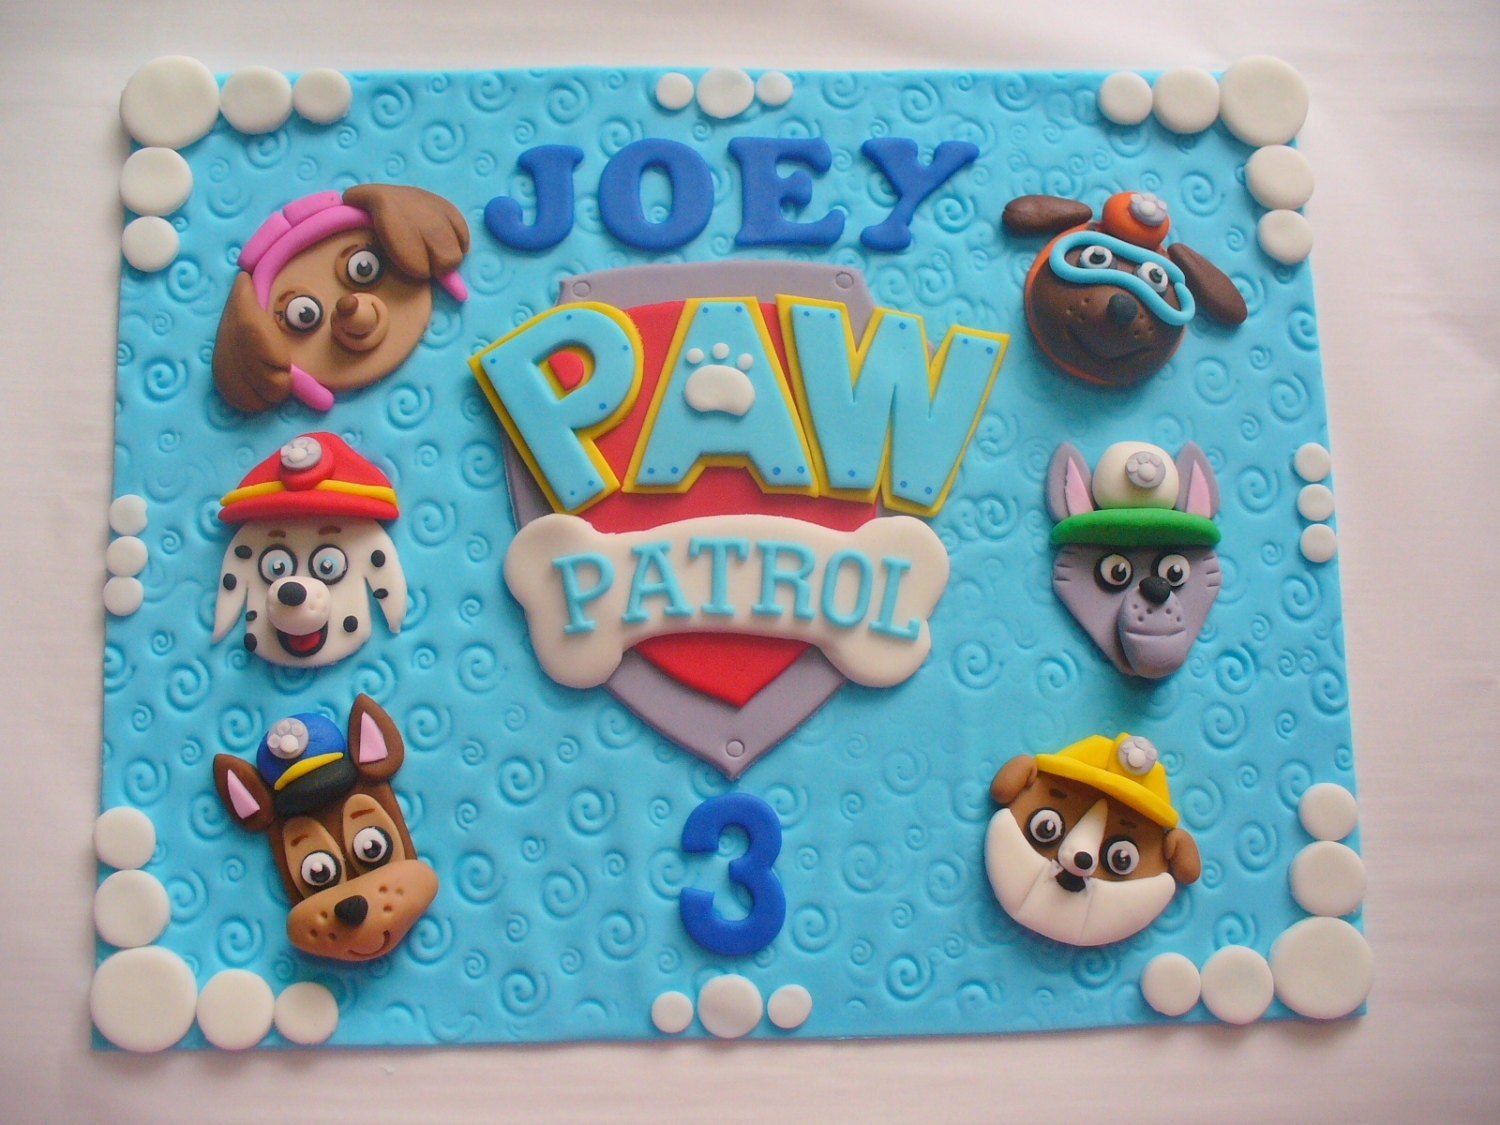 PAW PATROL Personalized Ediible Fondant Cake Topper Plaque for